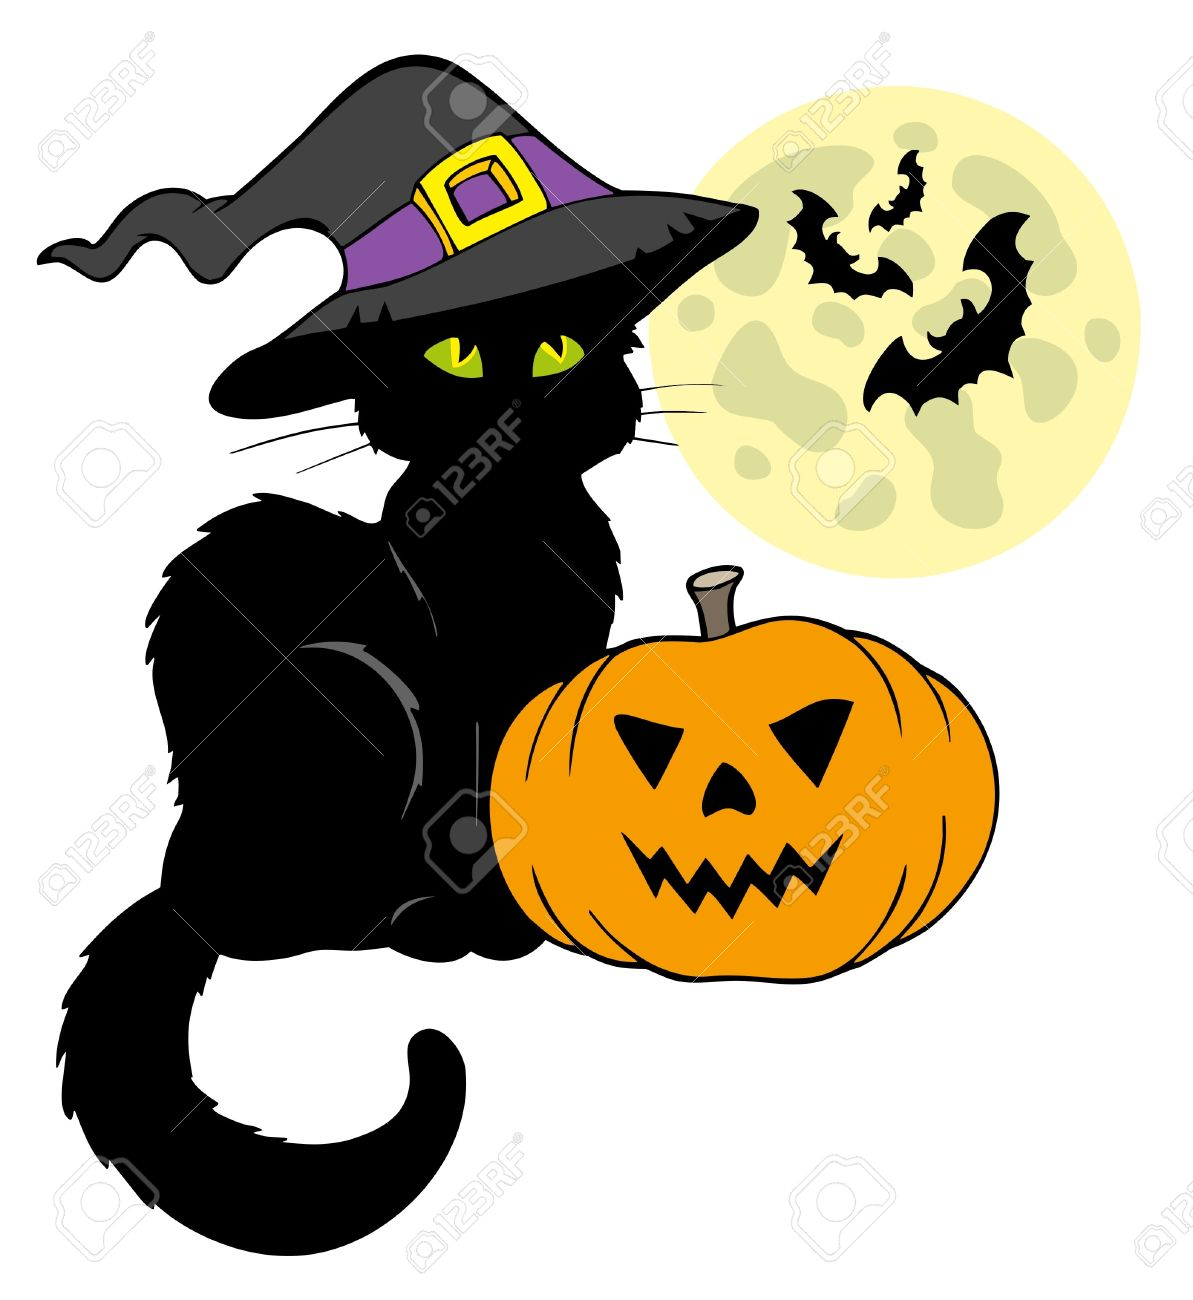 Halloween cat silhouette with Moon - illustration. Stock Vector - 7929325